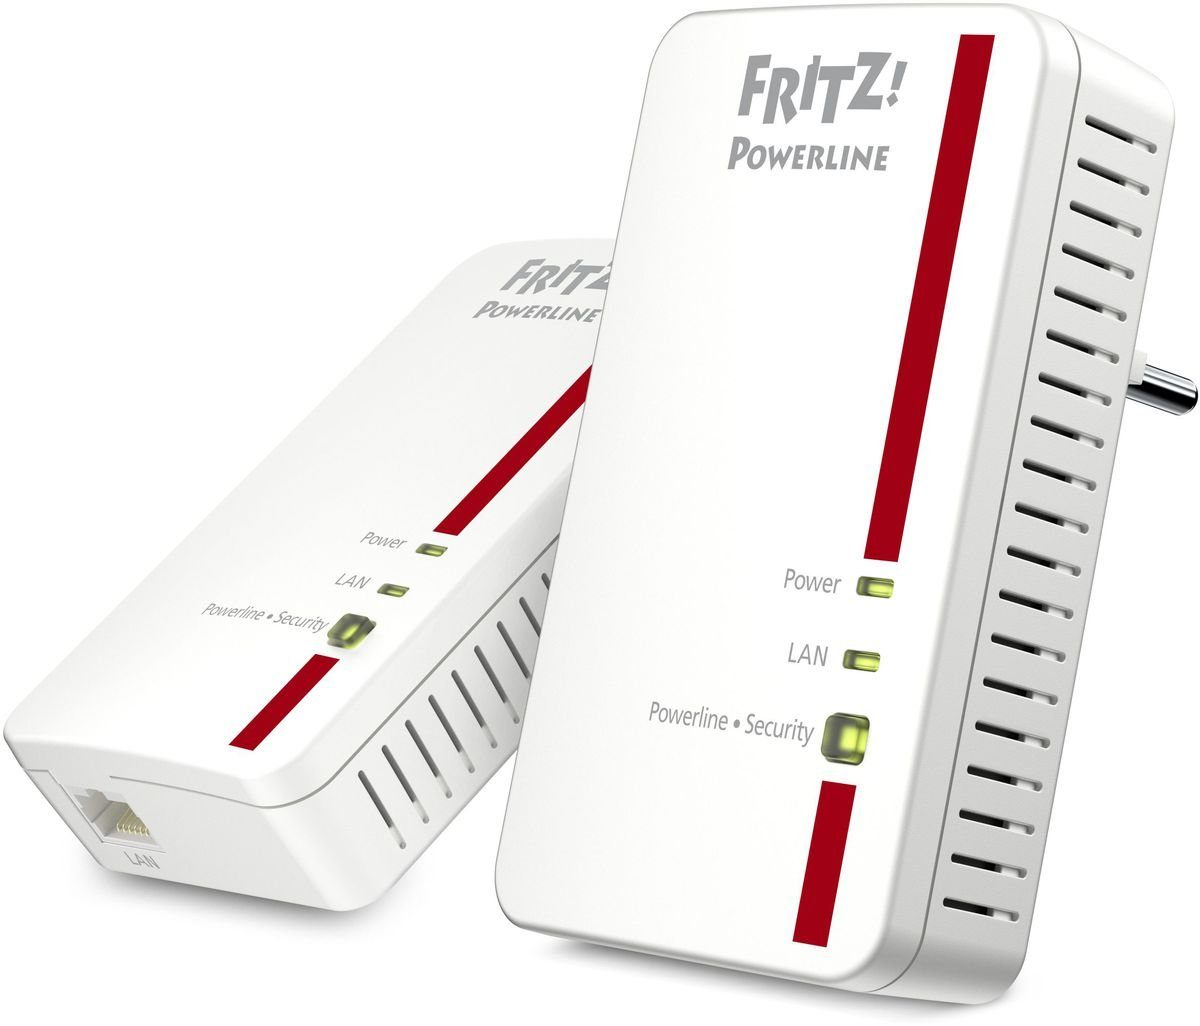 AVM Powerline »FRITZ!Powerline 1000E Set (1200 MBit/s)«